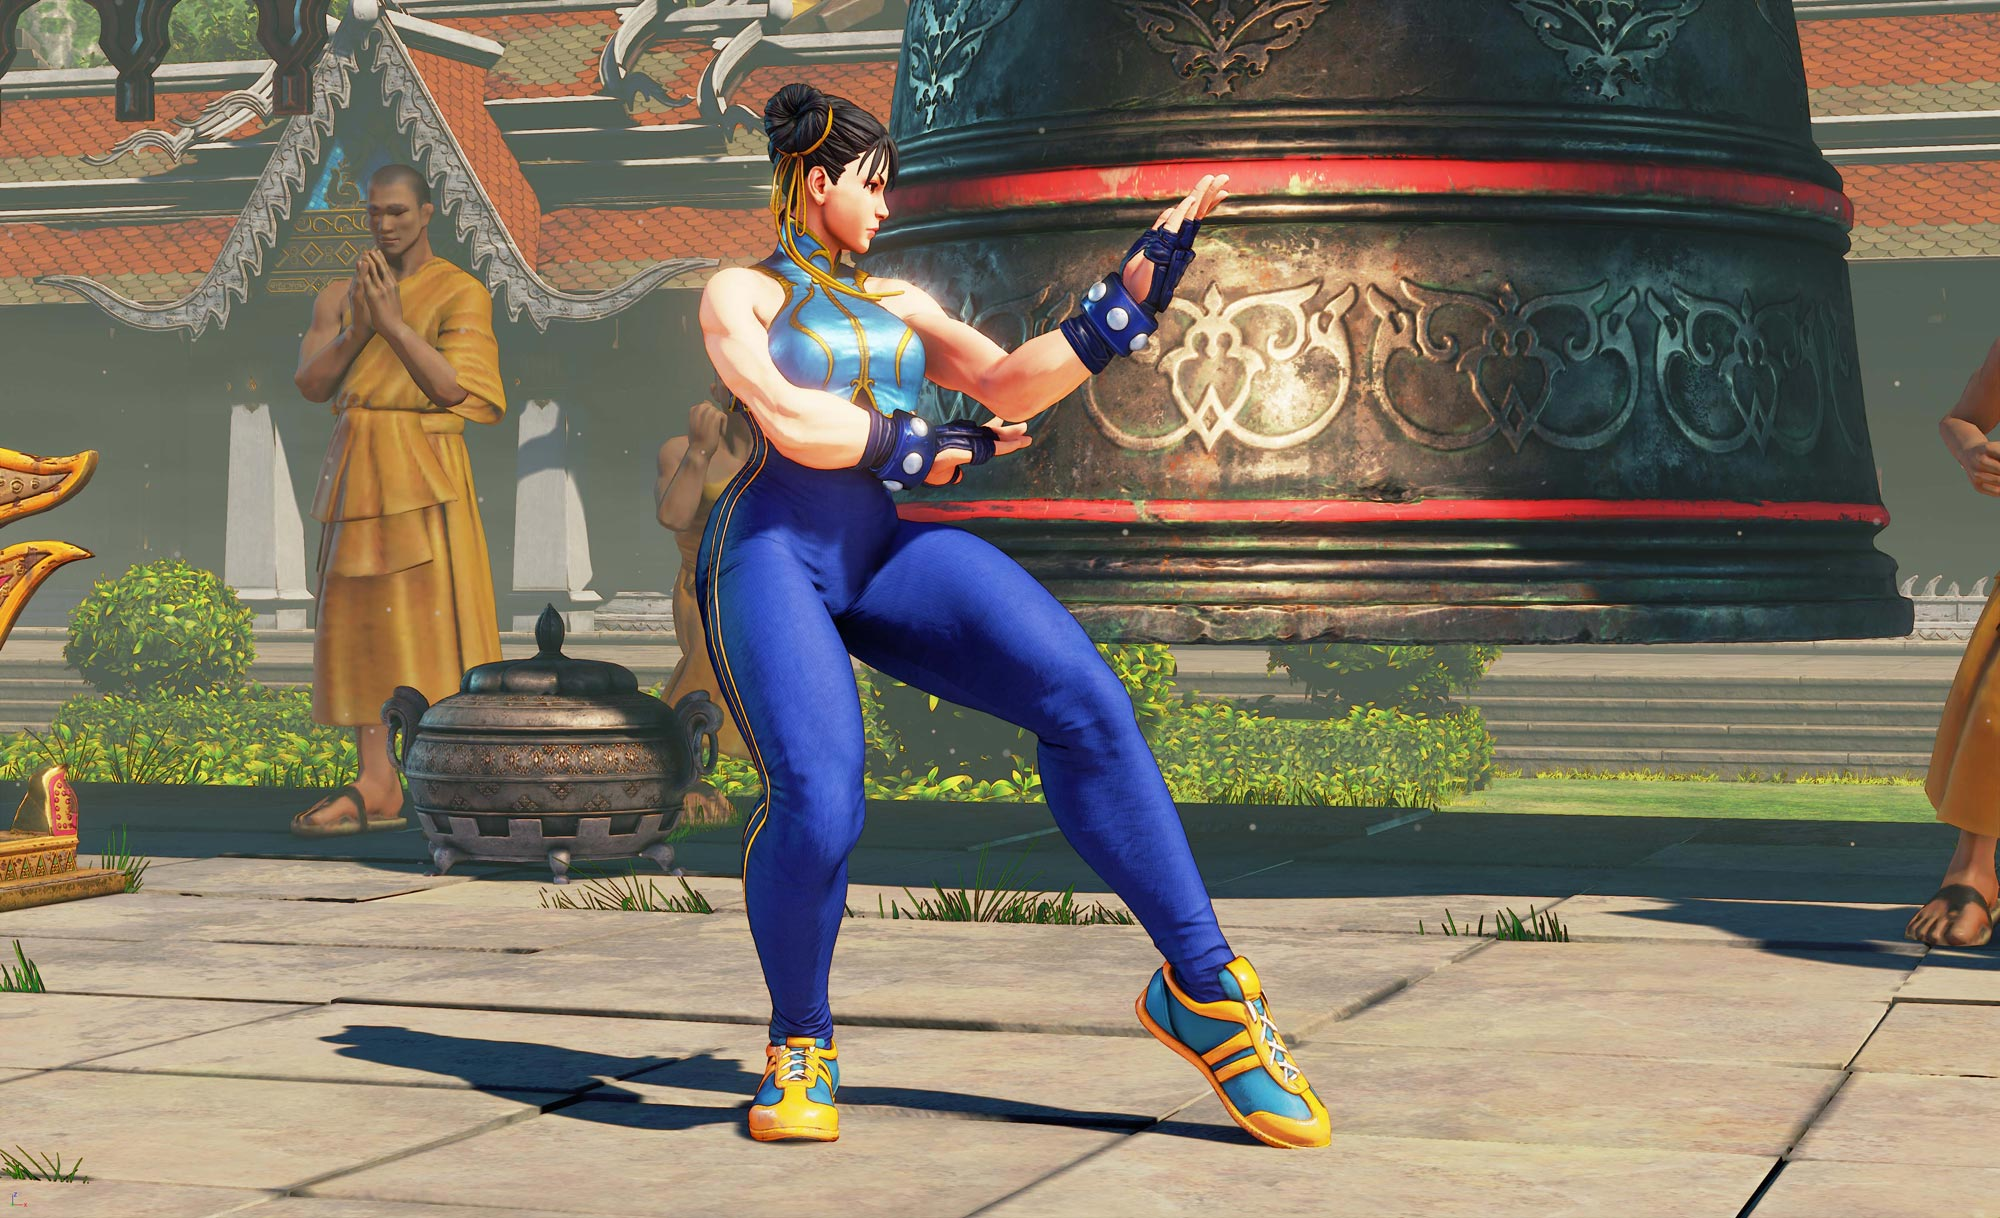 New hoilday and classic costumes in Street Fighter 5 7 out of 10 image gallery